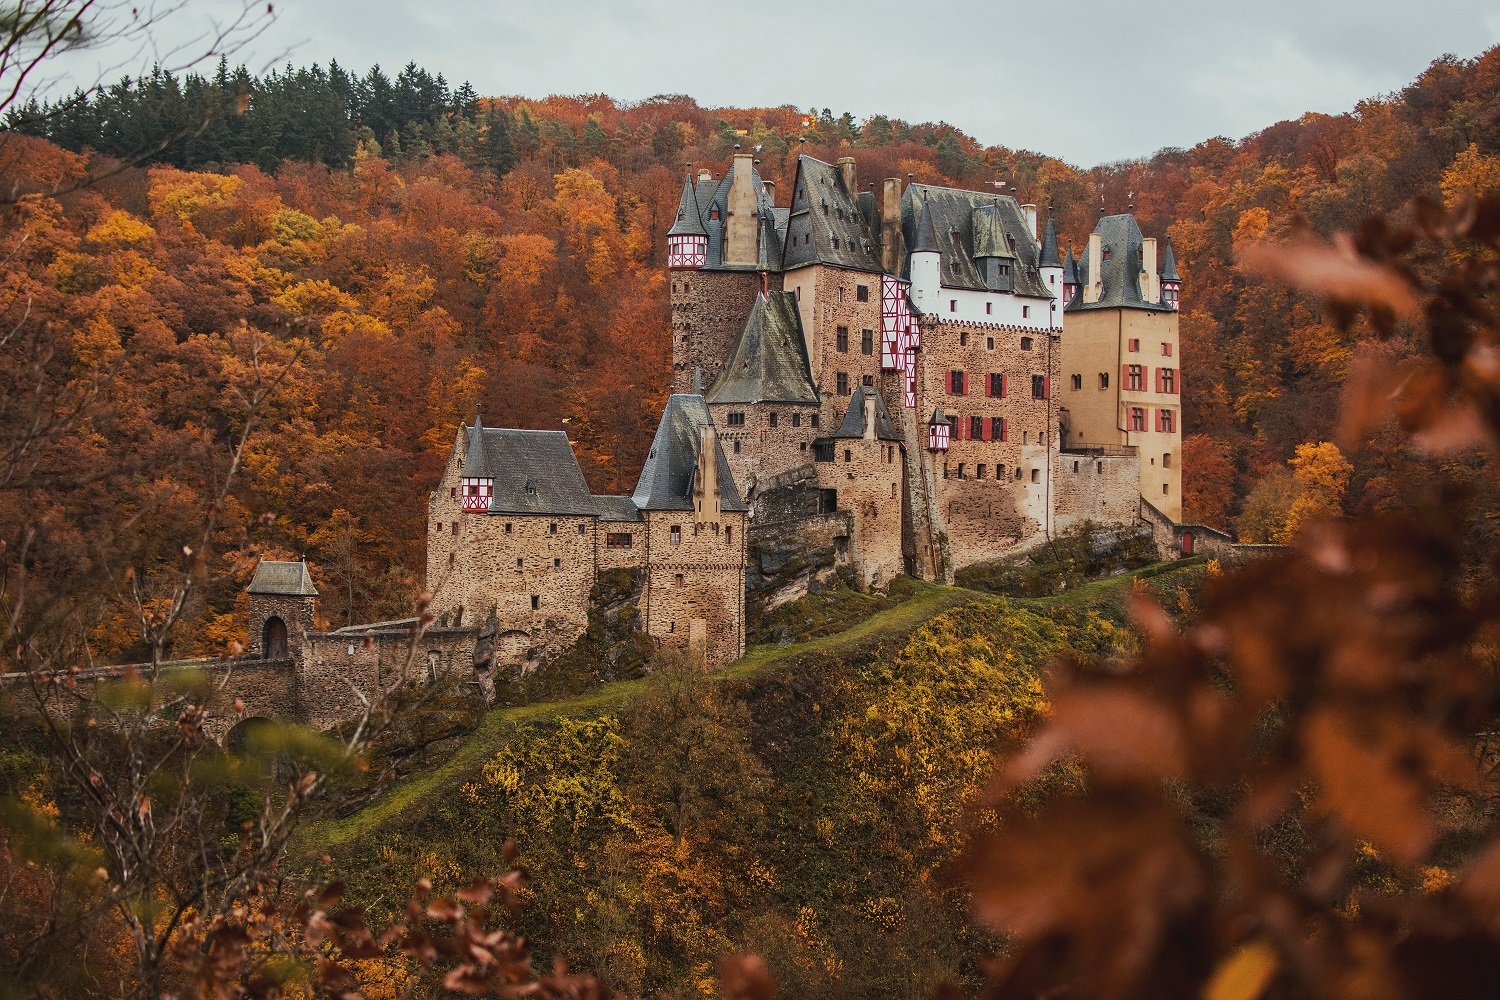 Autumnal scene with a castle